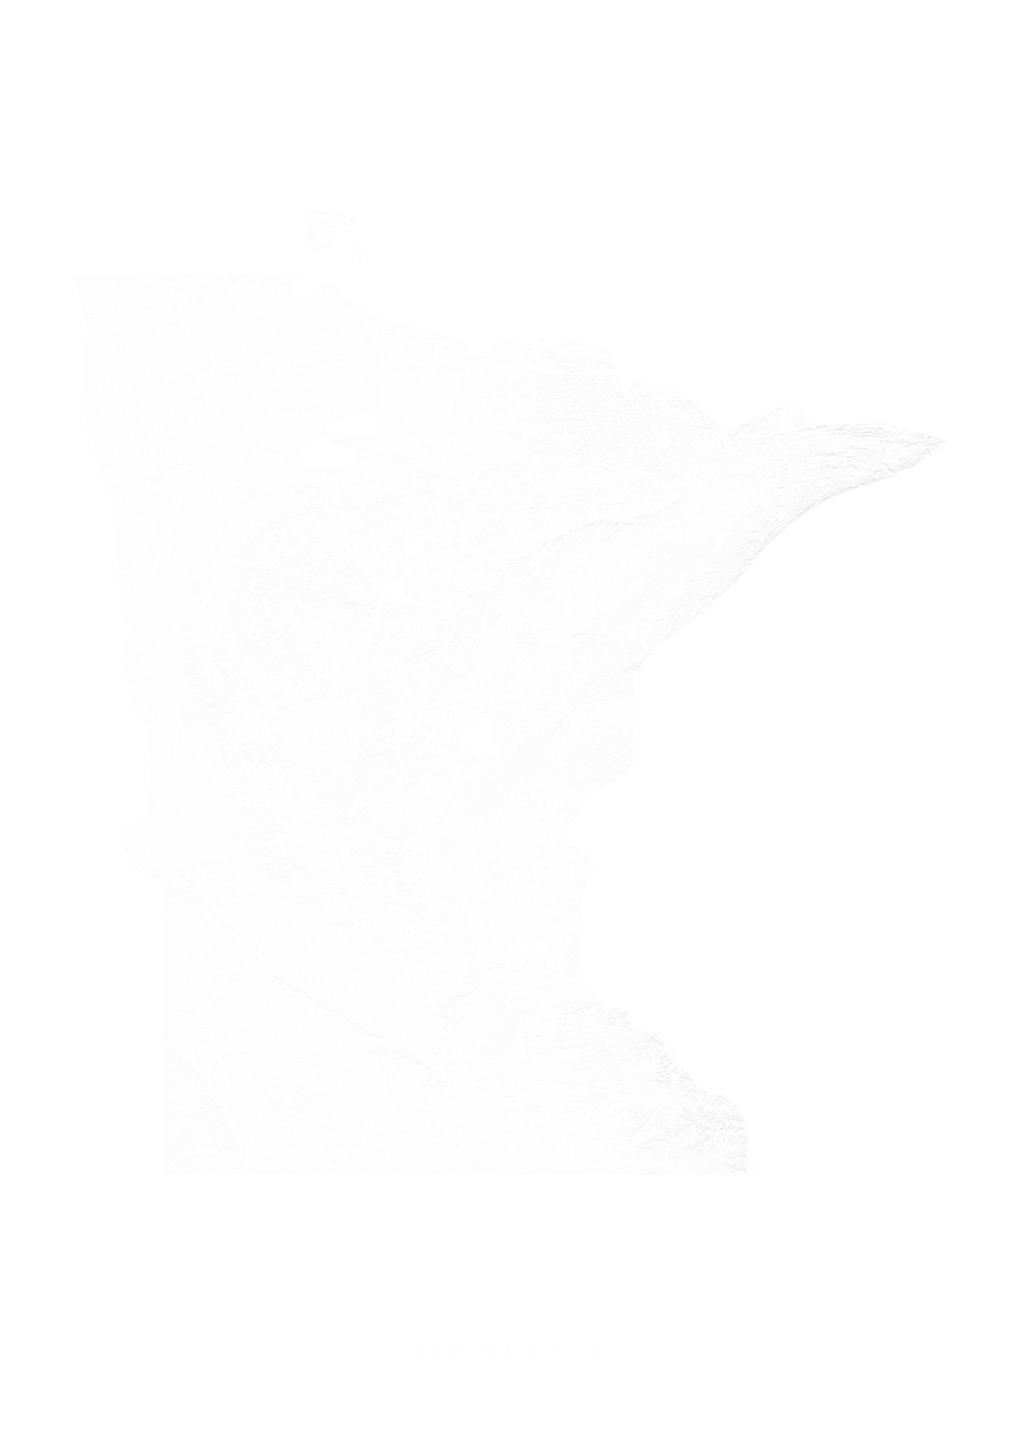 Minnesota wall map